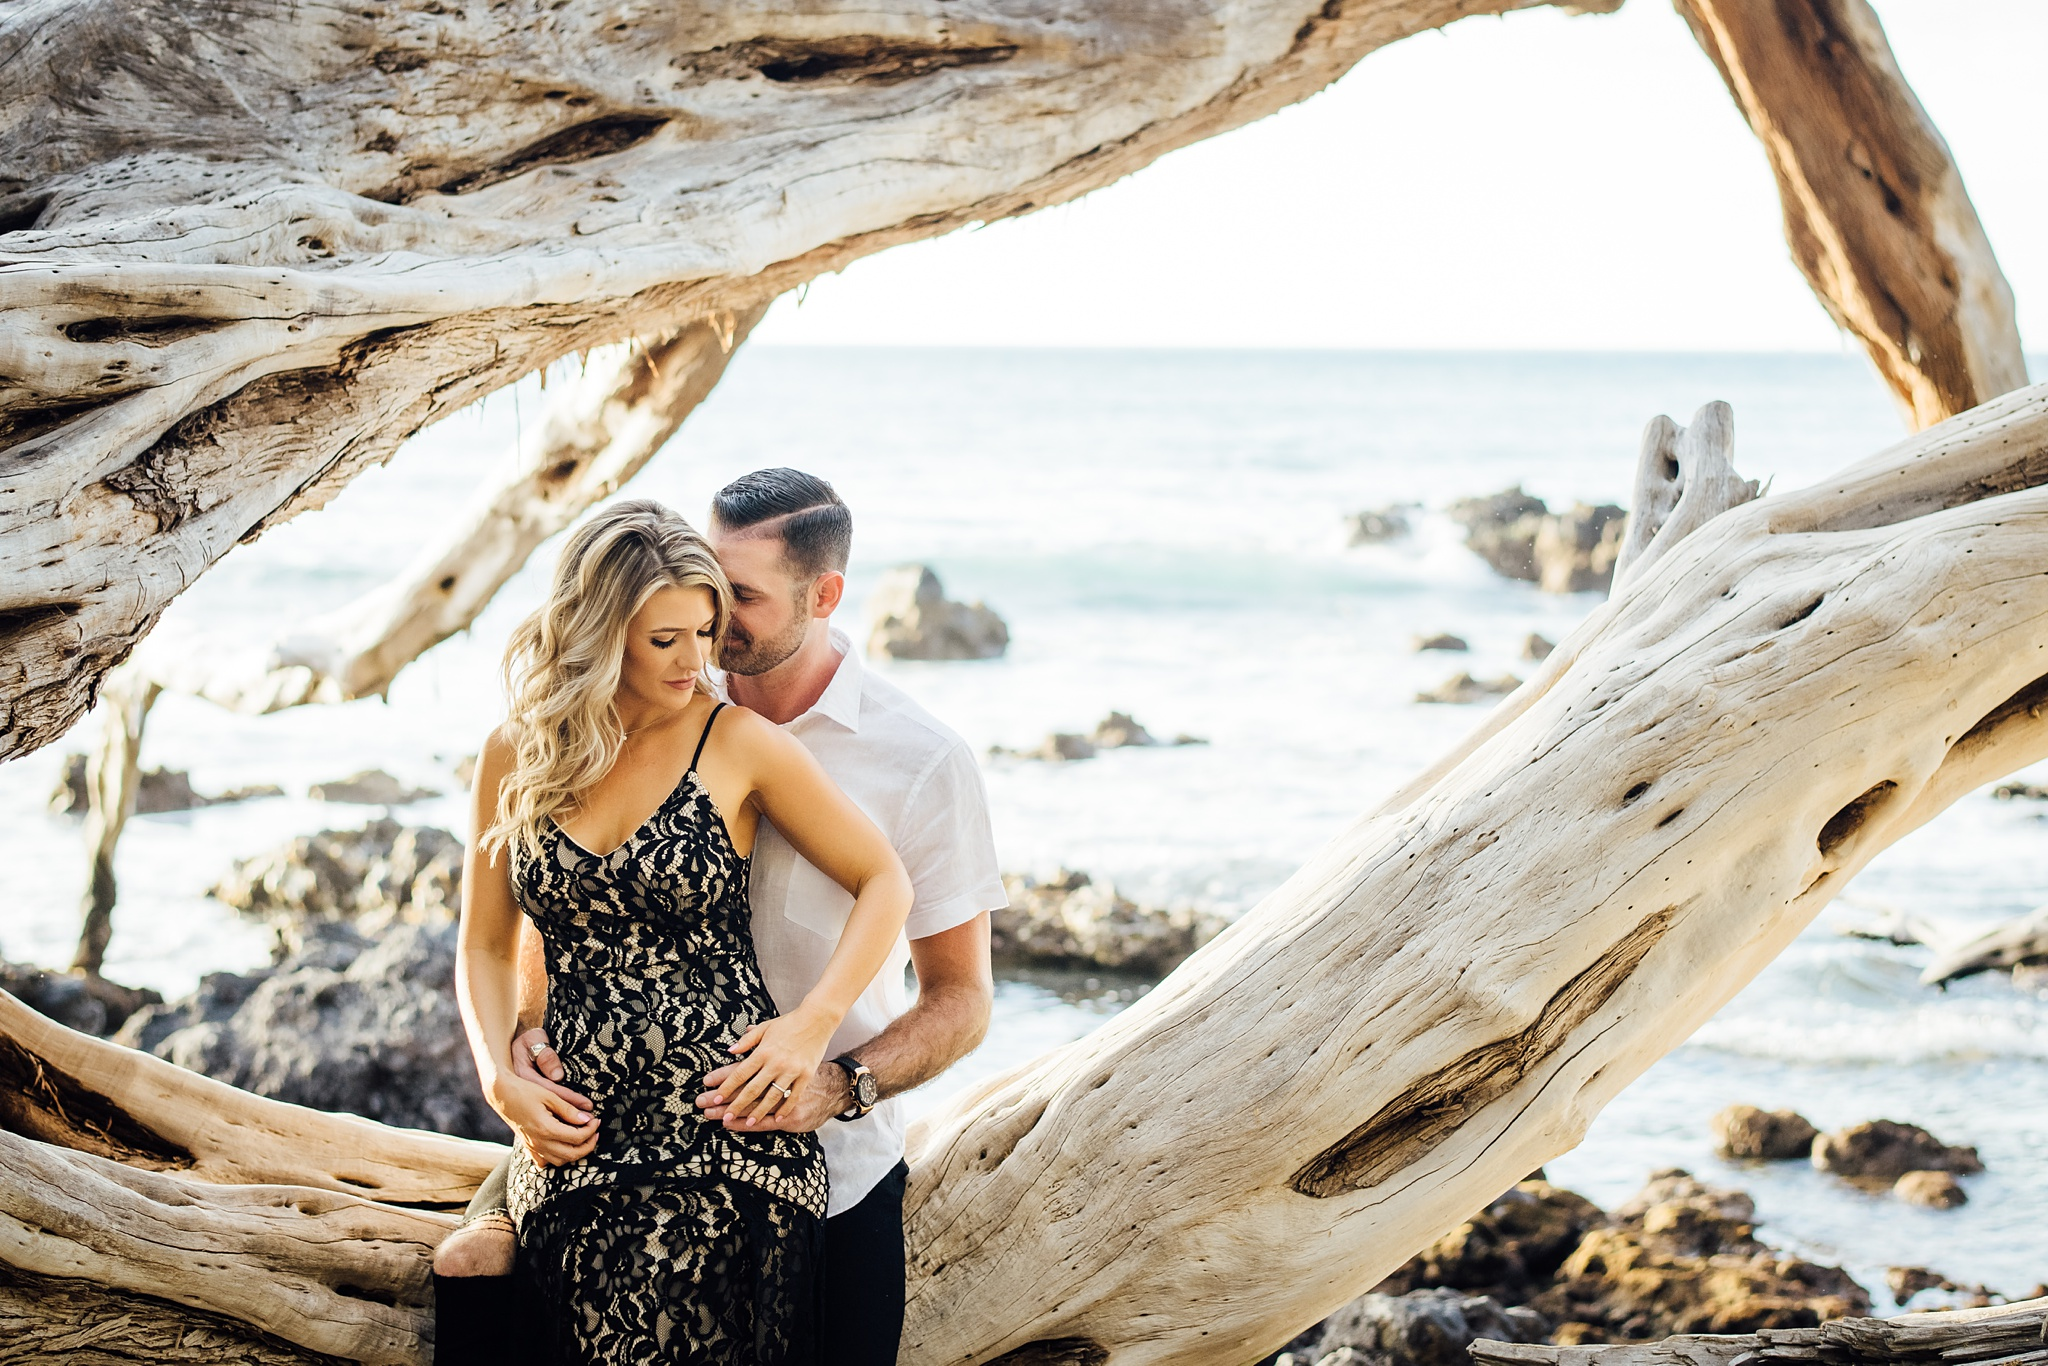 sweet image of a couple during their engagement session in hawaii